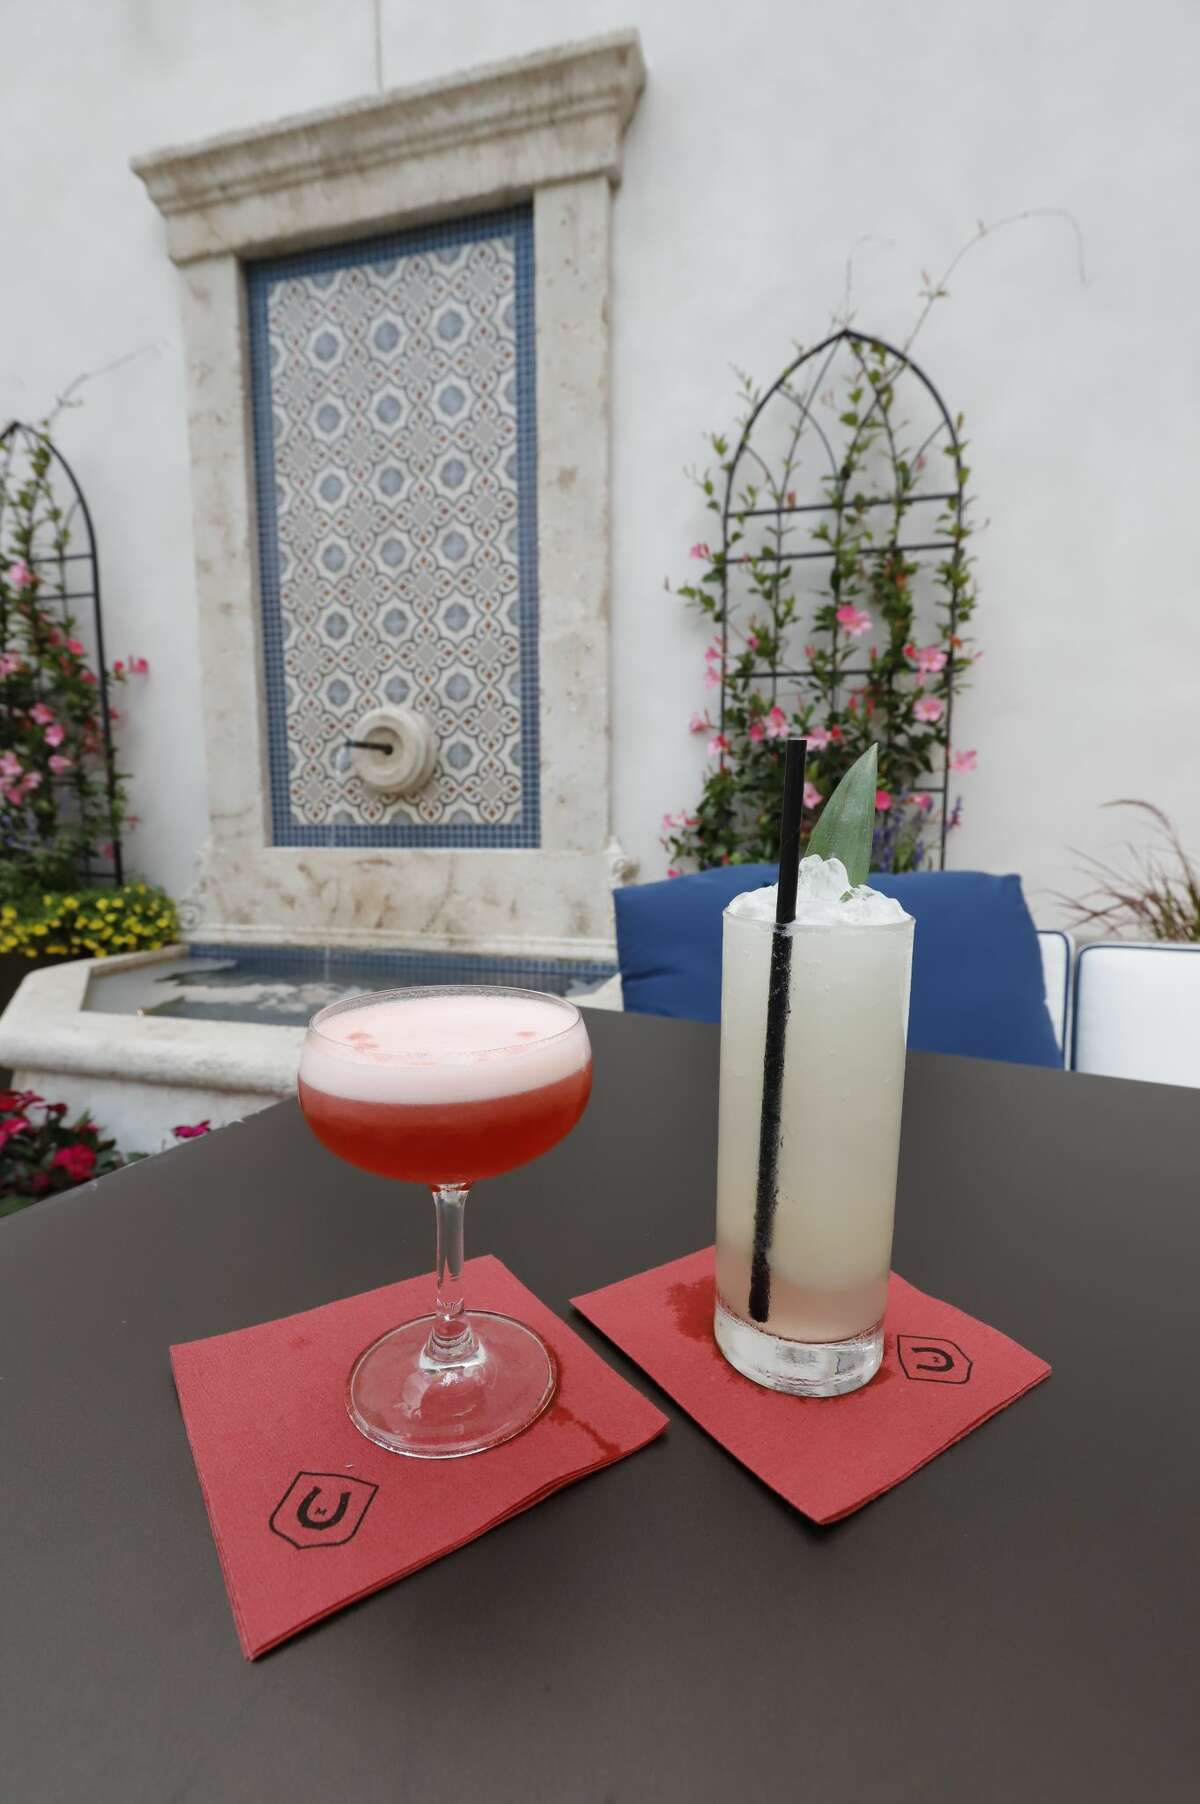 Cocktails available when you dine in the outdoor garden space at the Adelphi Hotel.